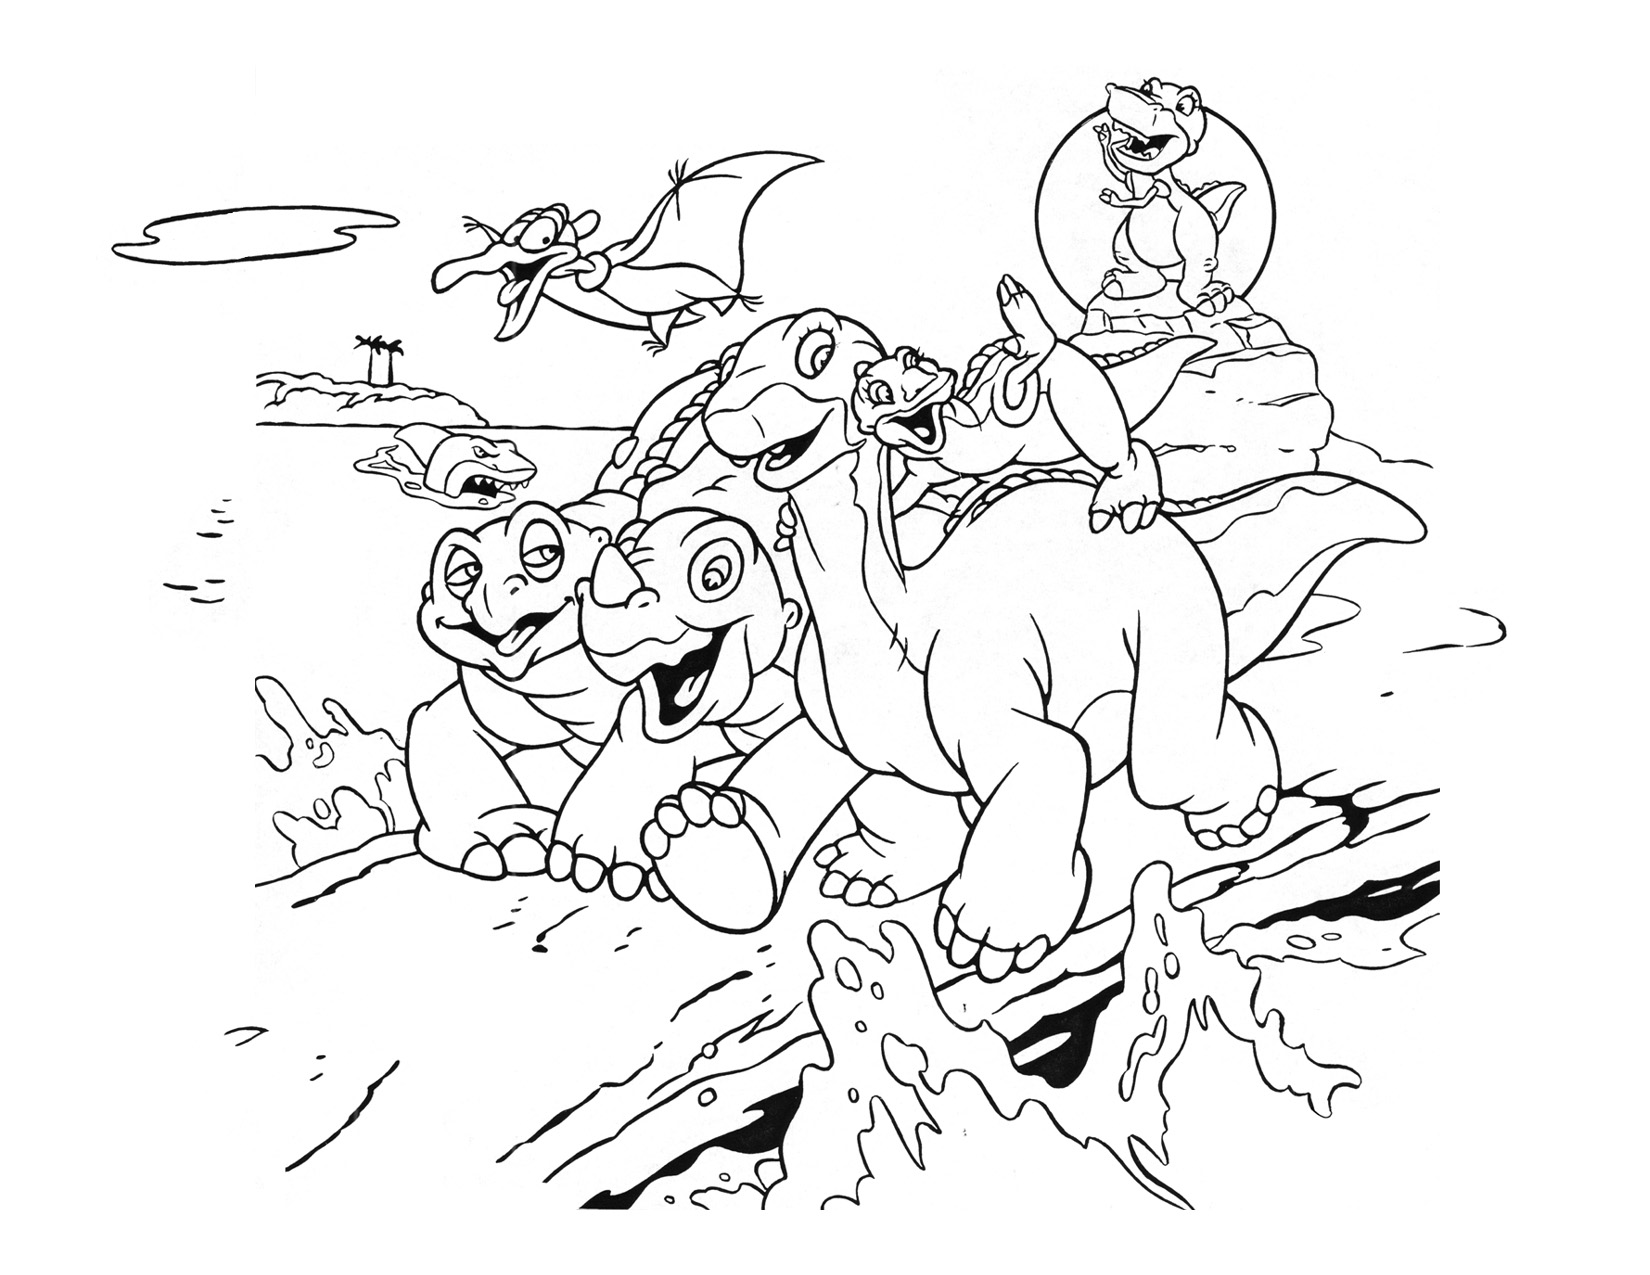 Coloring Pages The Land Before Time Coloring Pages lbt movie coloring pages land before time wiki fandom powered page 2 5